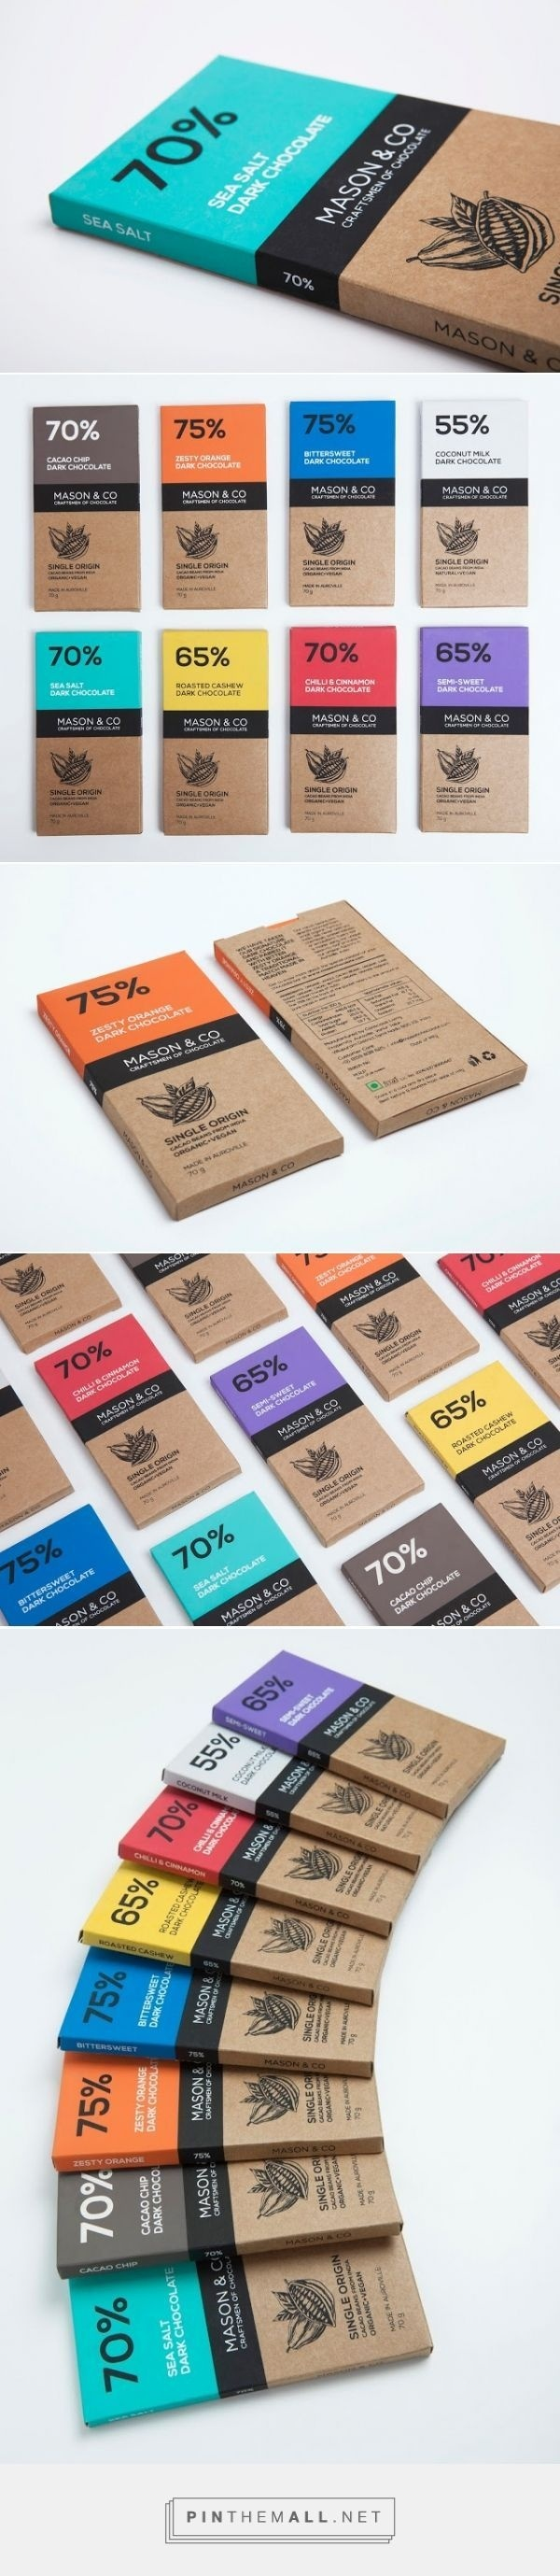 Mason & Co Chocolate Bars #illustration #type #colour #packaging